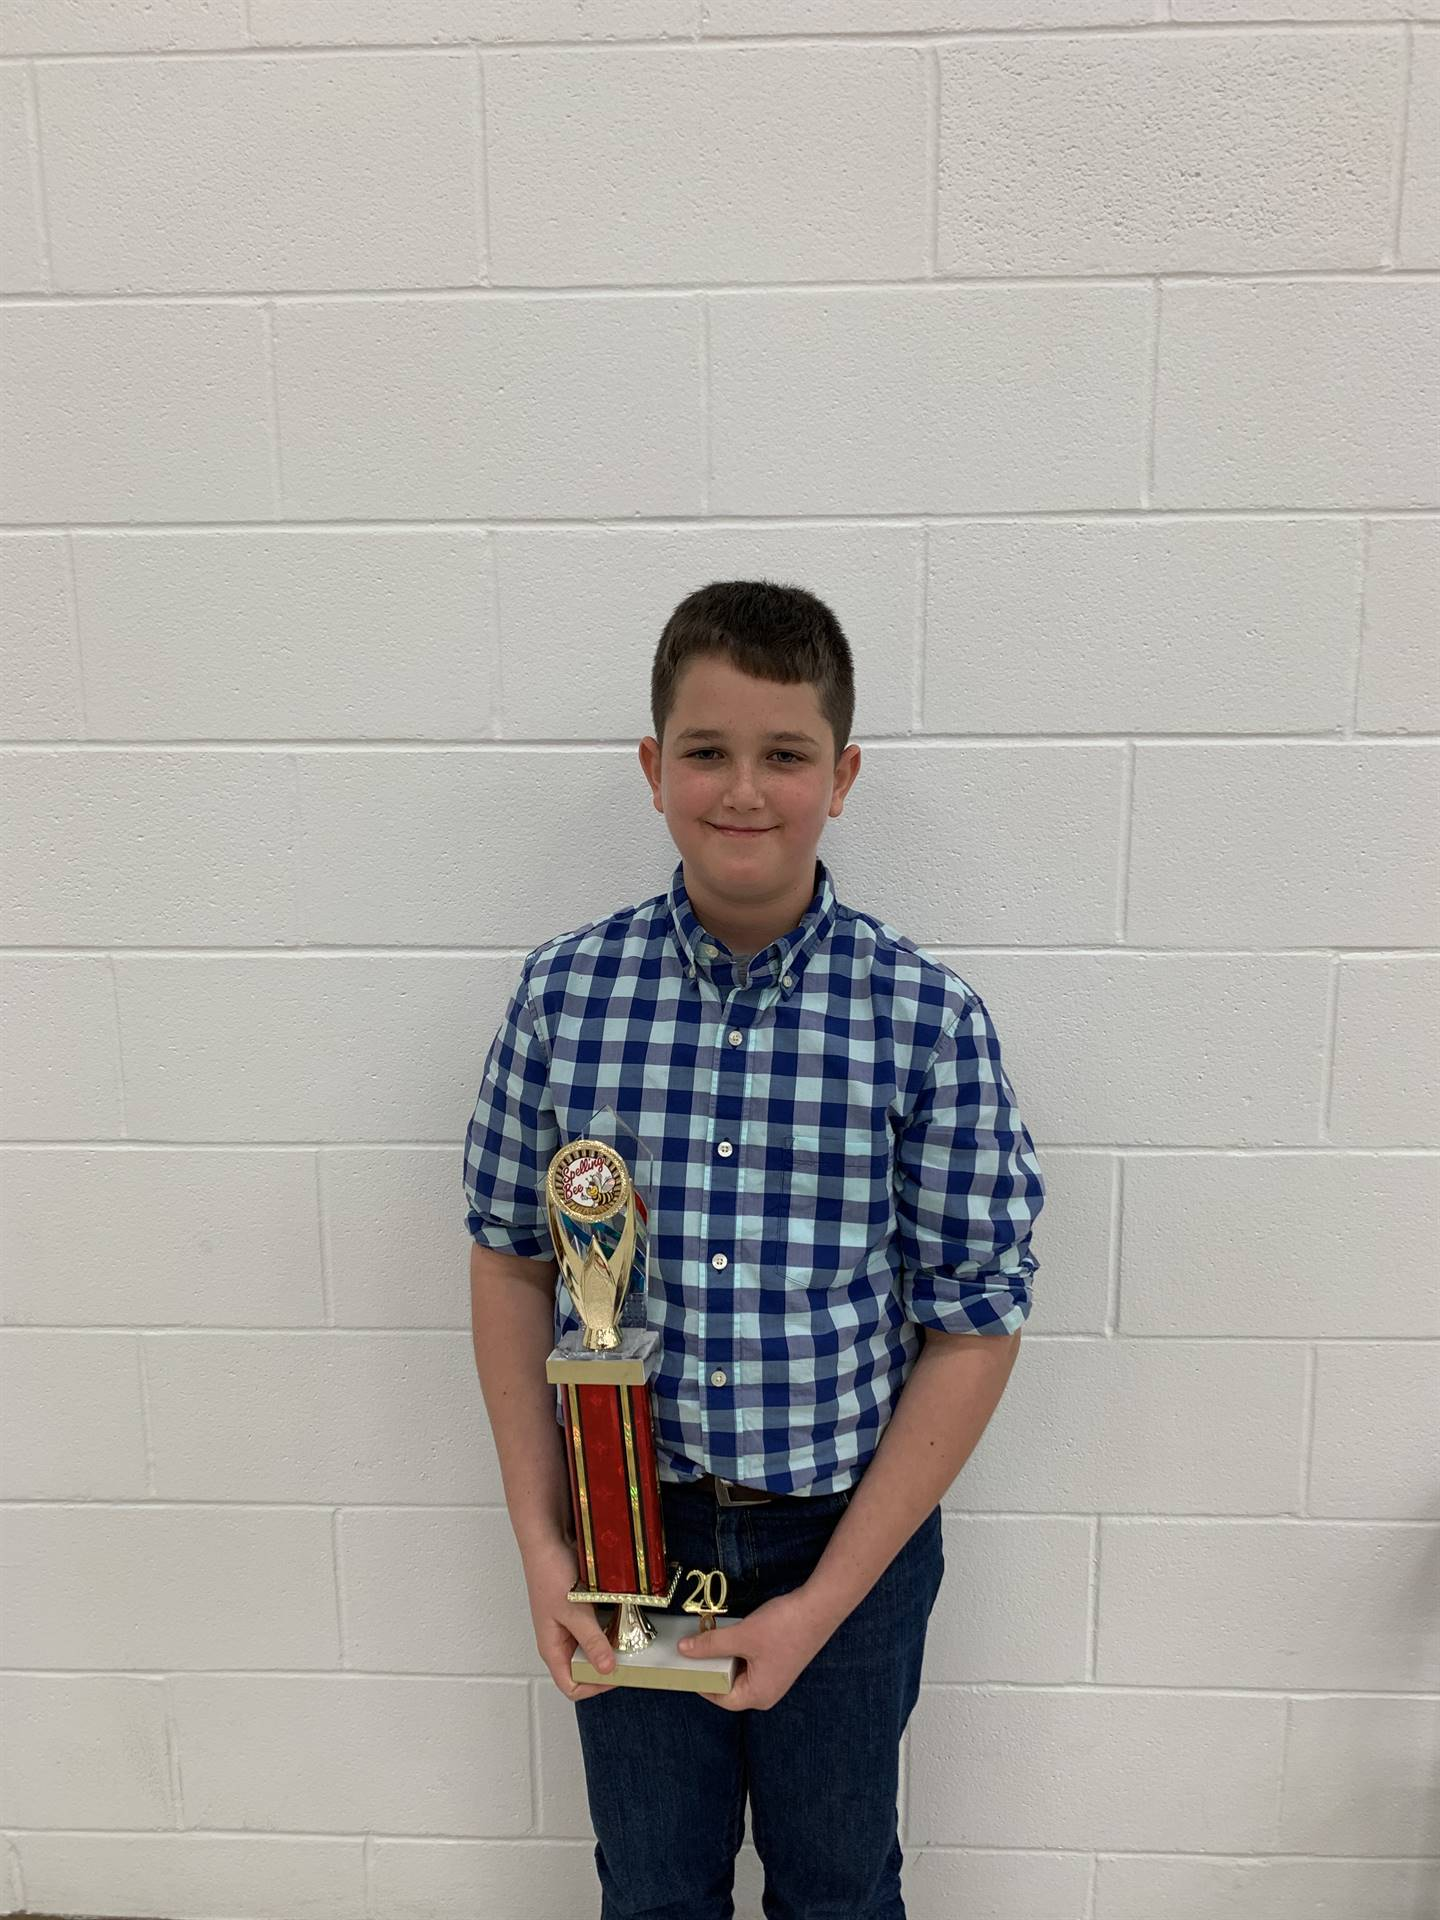 First place is 6th grader Clay Utter